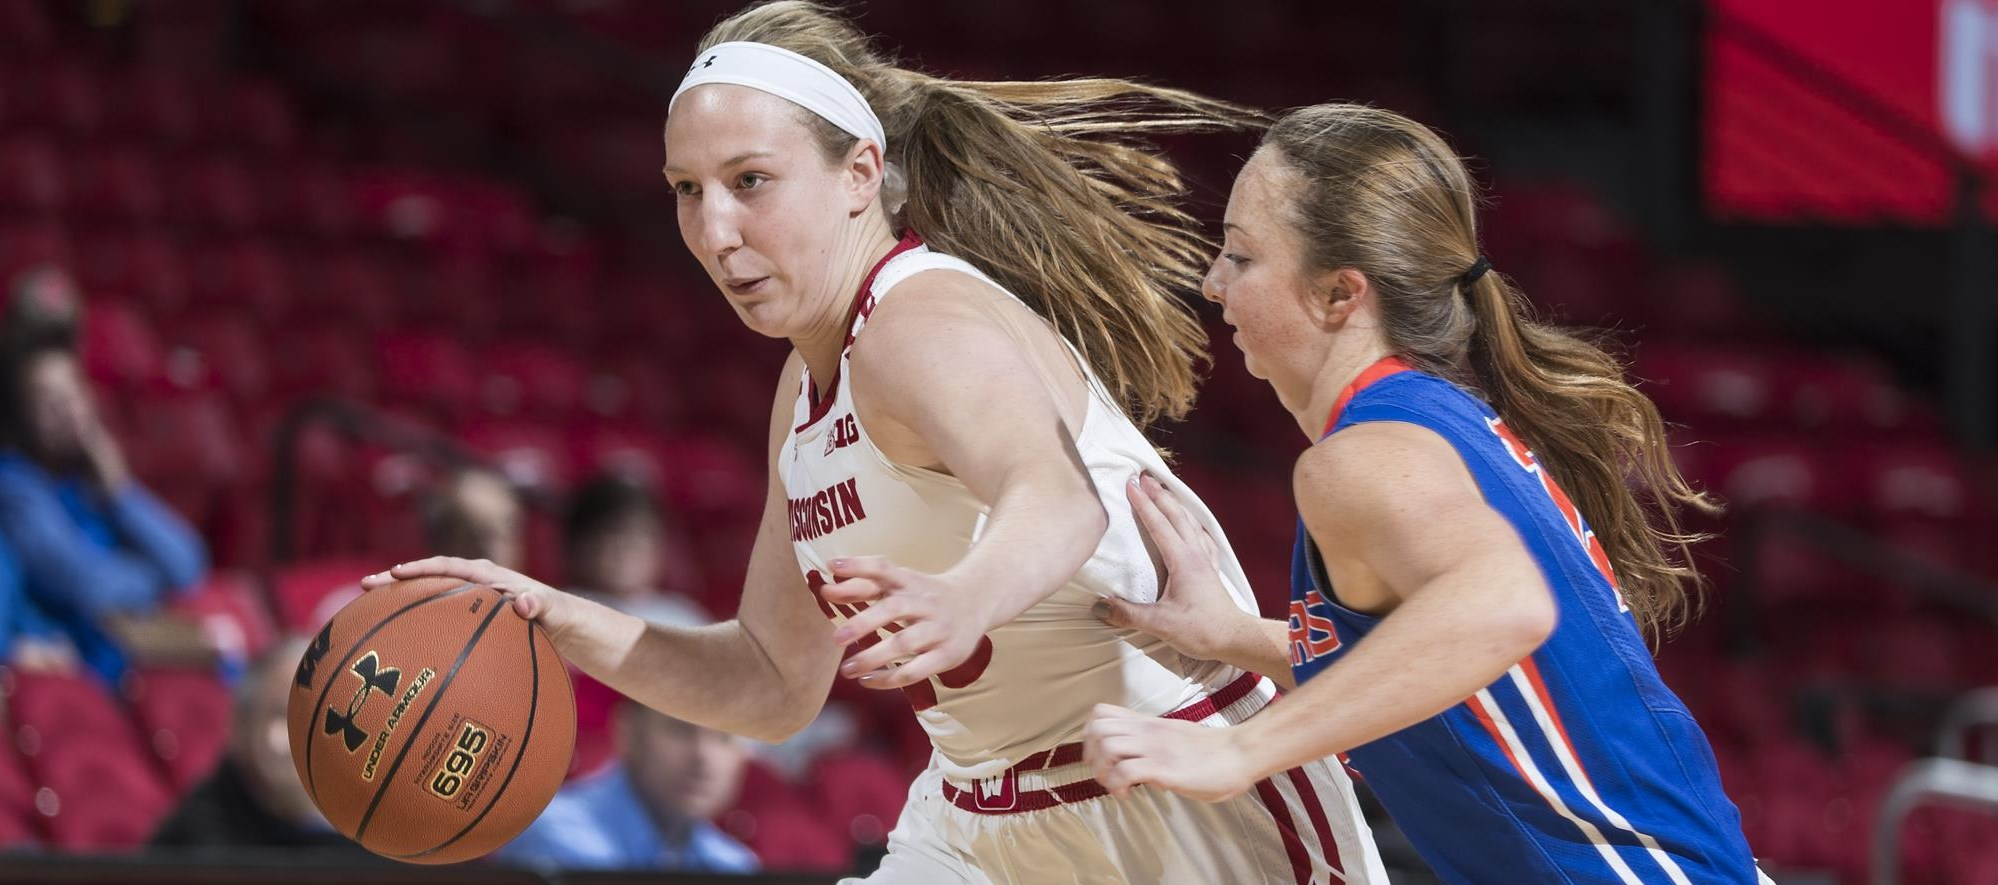 All About Lizzie 2012 lizzie miller | women's basketball | wisconsin badgers